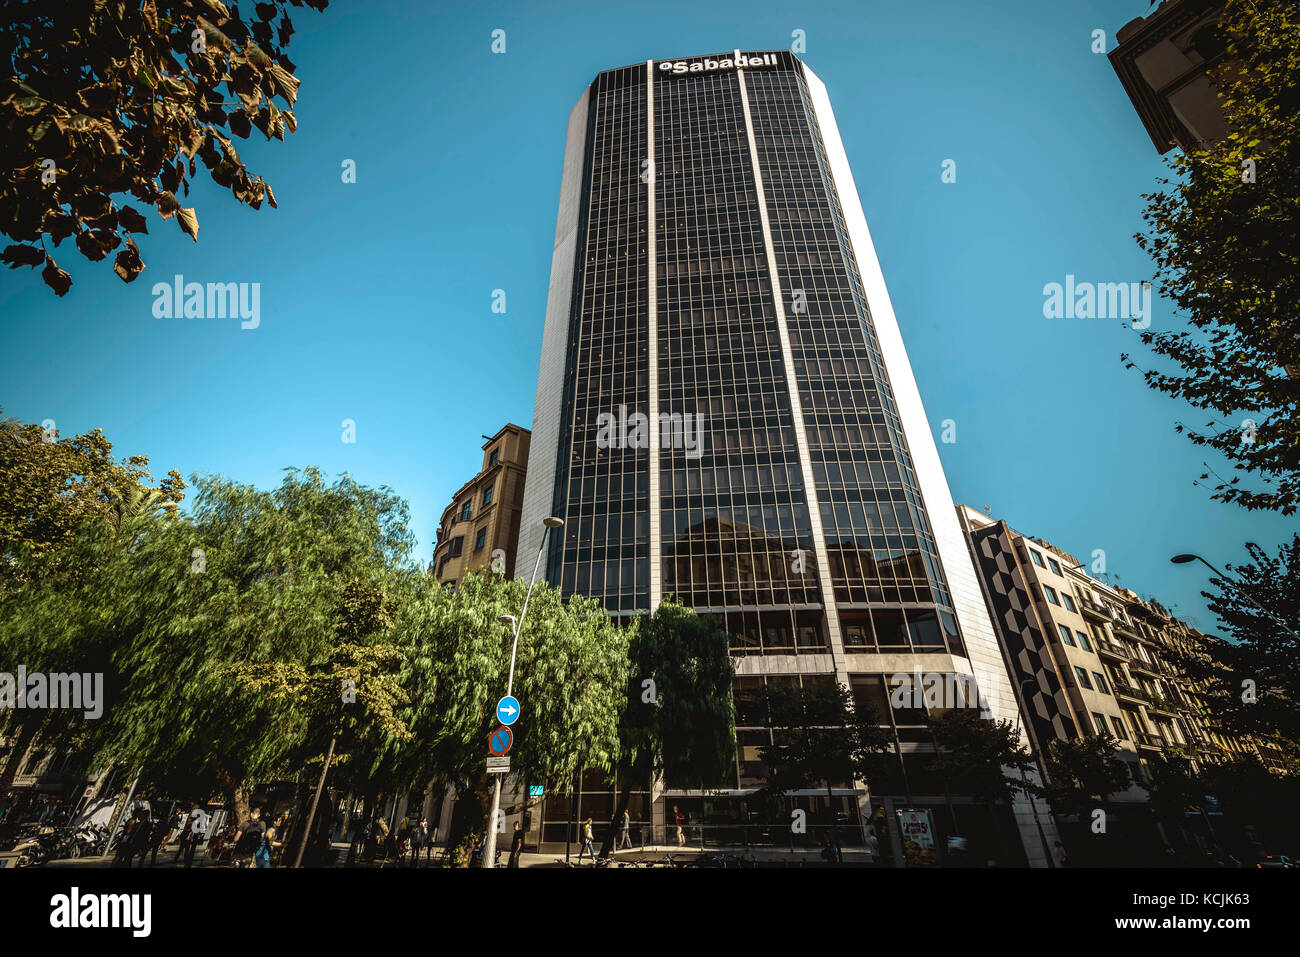 Sabaedell Barcelona Spain 5th Oct 2017 The Banco Sabadell The Stock